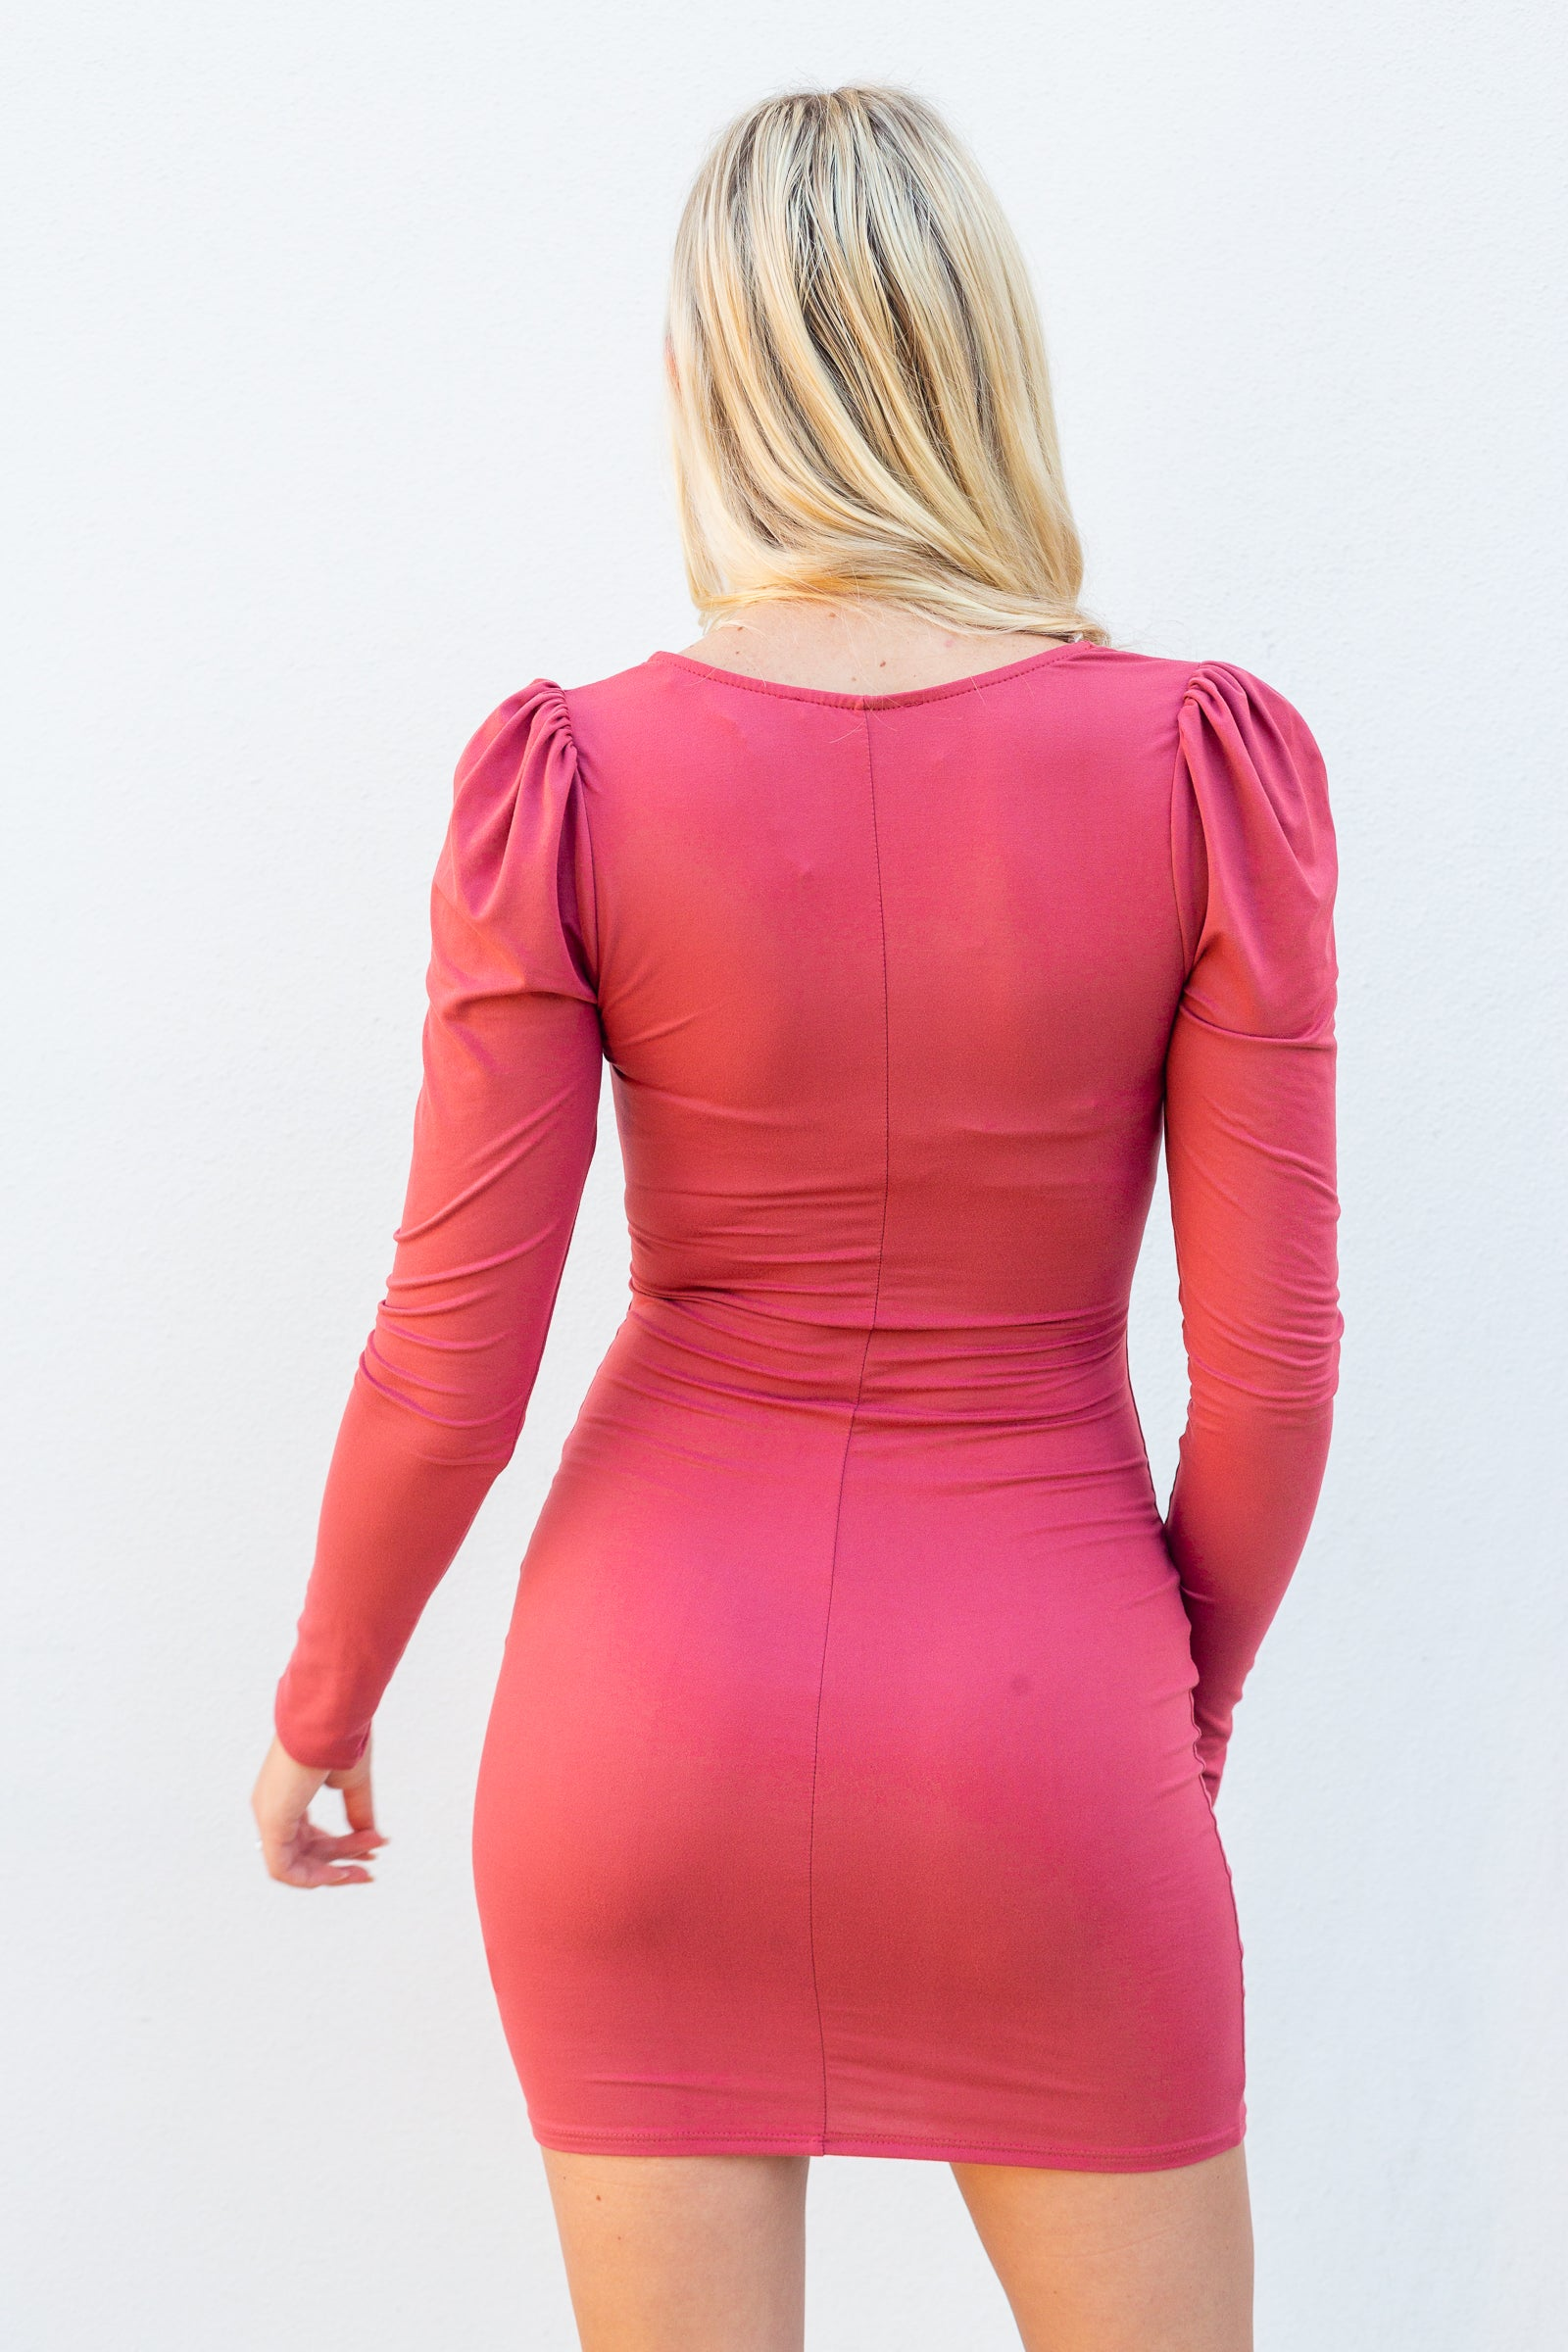 Long fitted sleeves that attach to a v-neckline with a ruched bust bodice and lead to an exposed cut-out midriff and leads to a fitted and hip-hugging skirt.